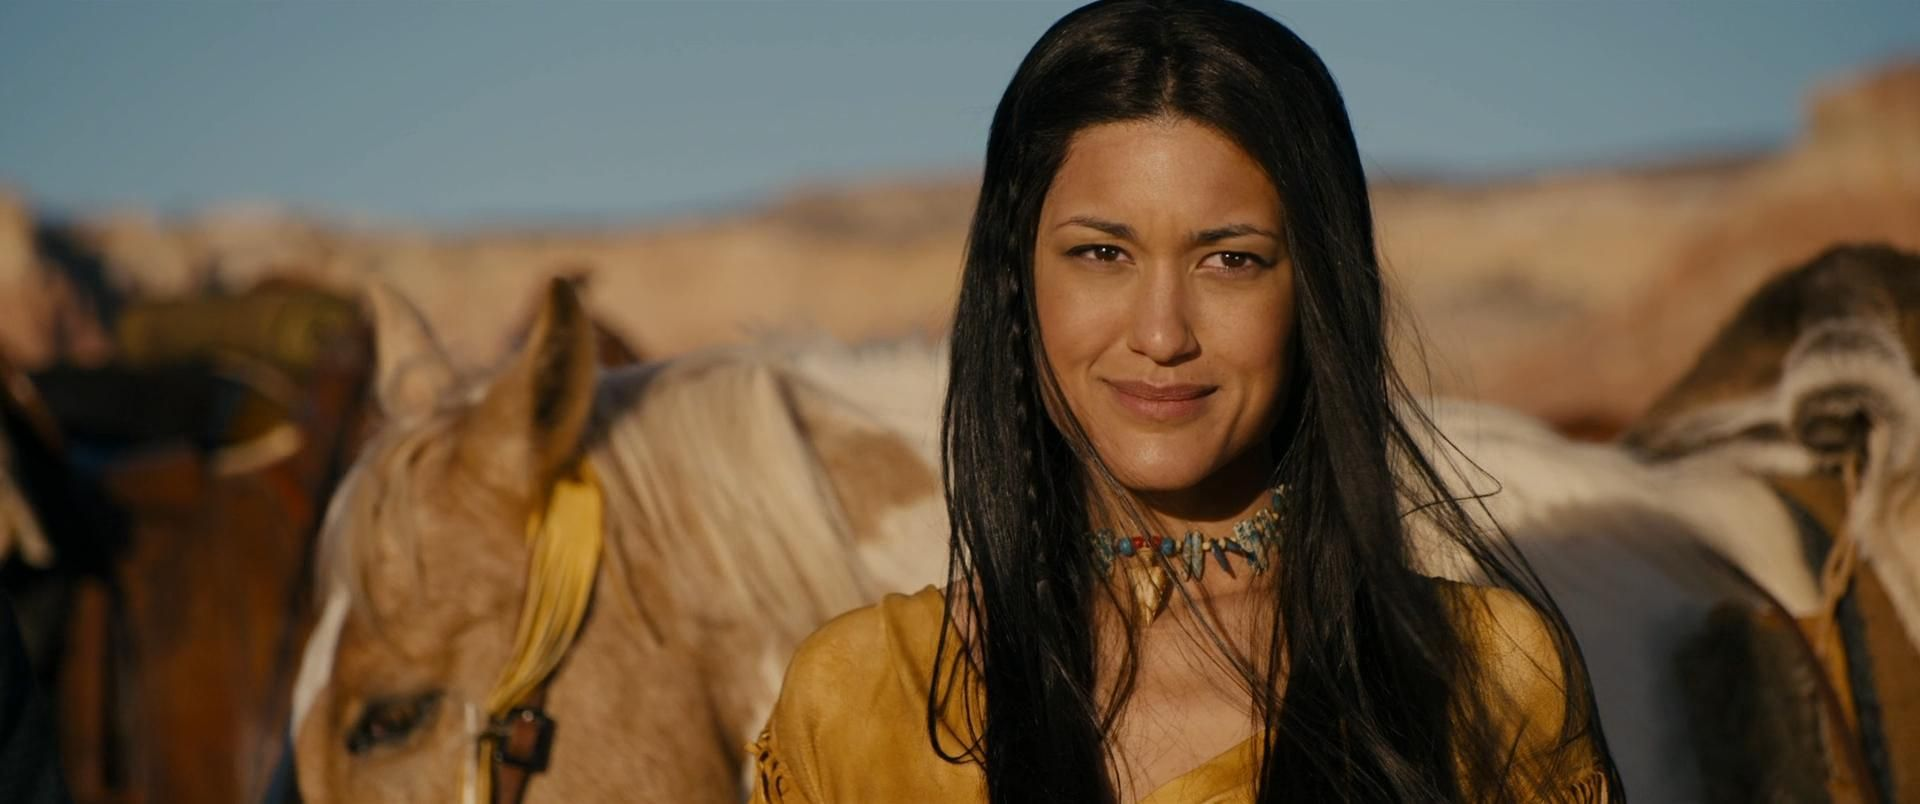 Julia Jones in Ridiculous 6